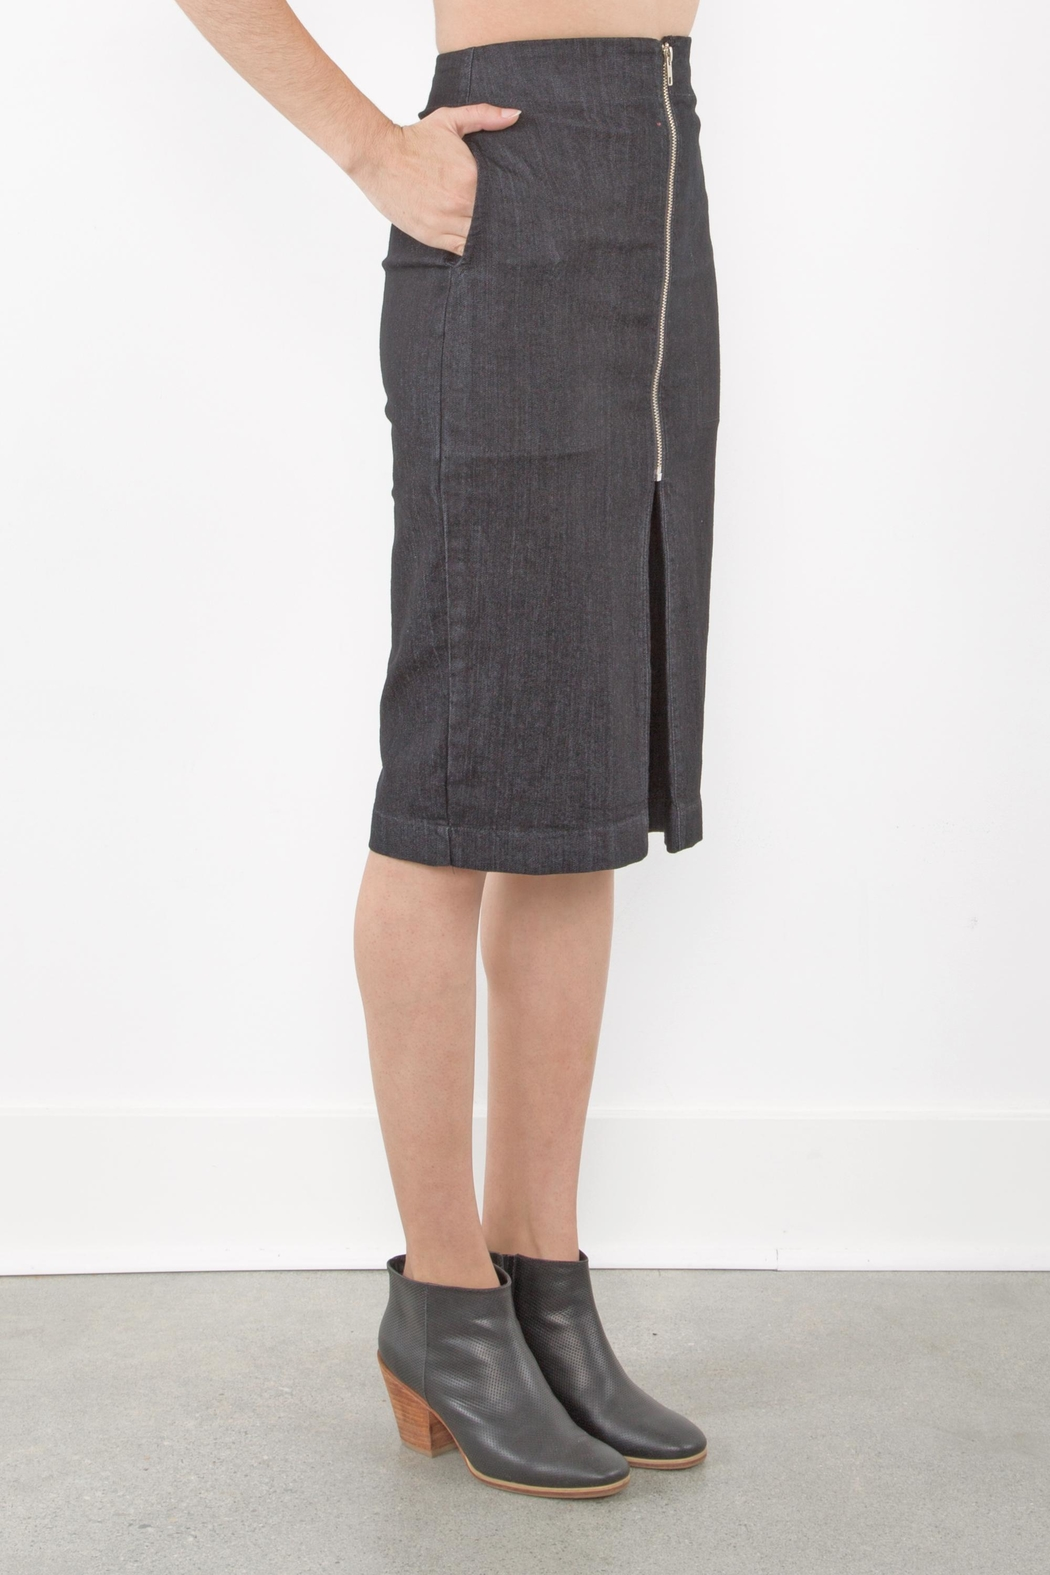 Prairie Underground Zip Pleat Skirt - Front Full Image